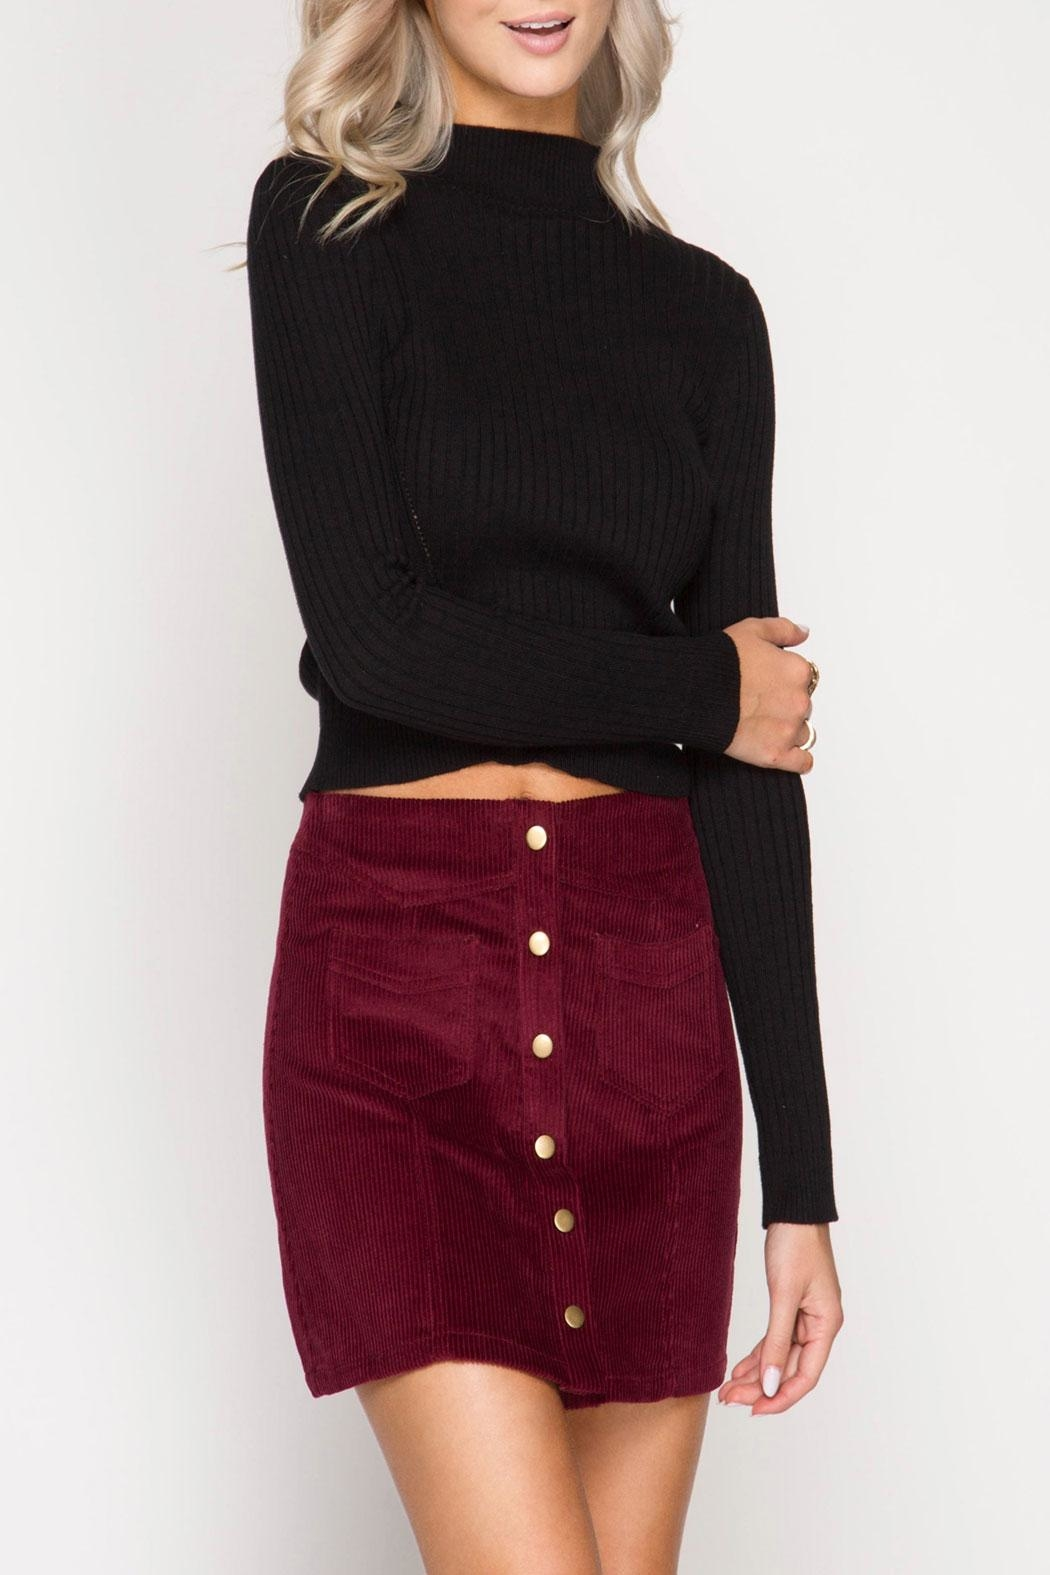 She + Sky Analia Wine Skirt - Front Cropped Image